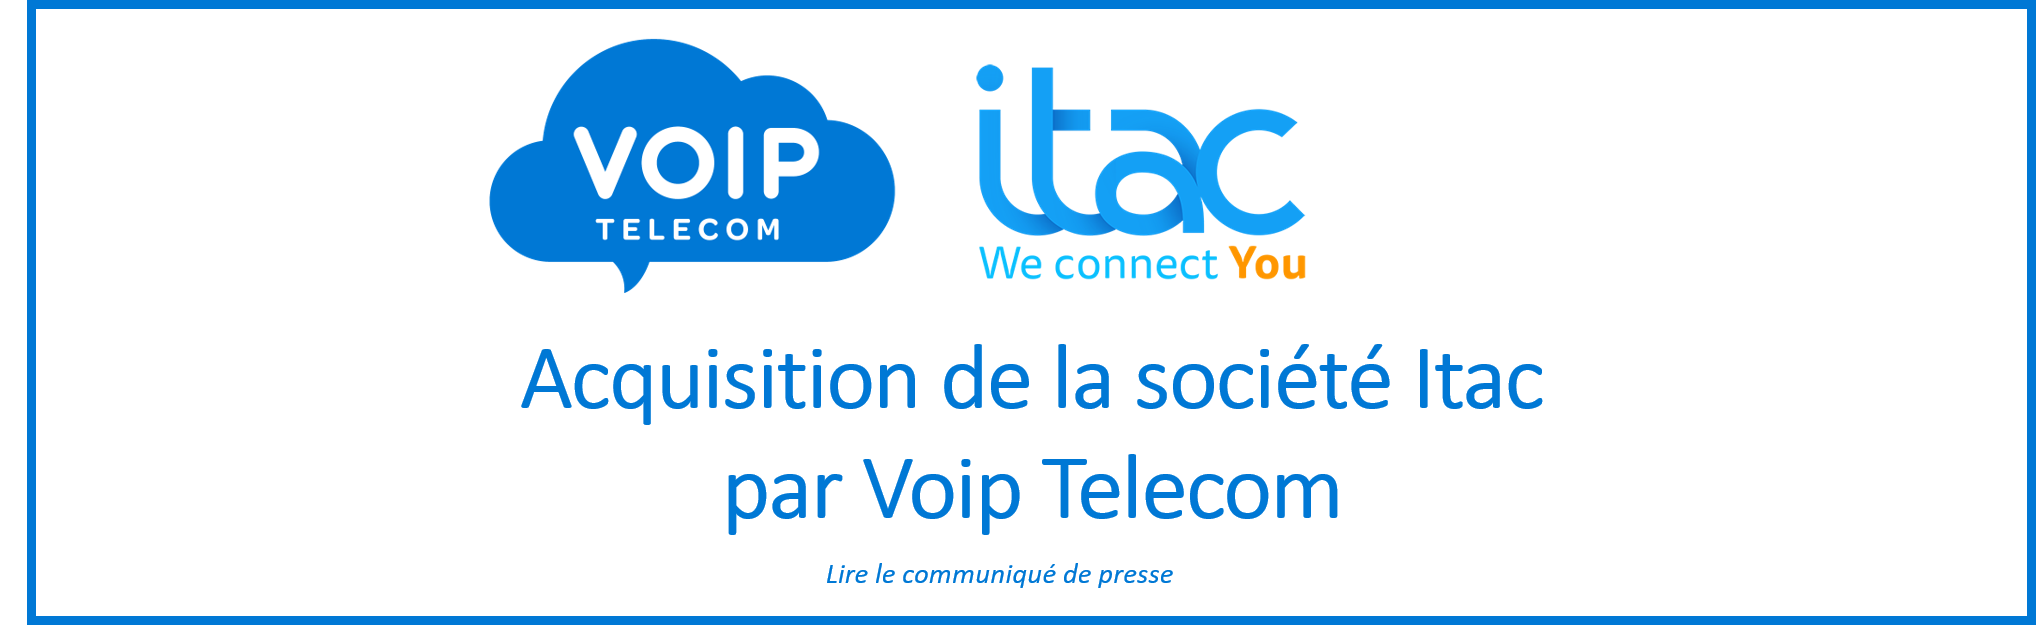 Acquisition Itac